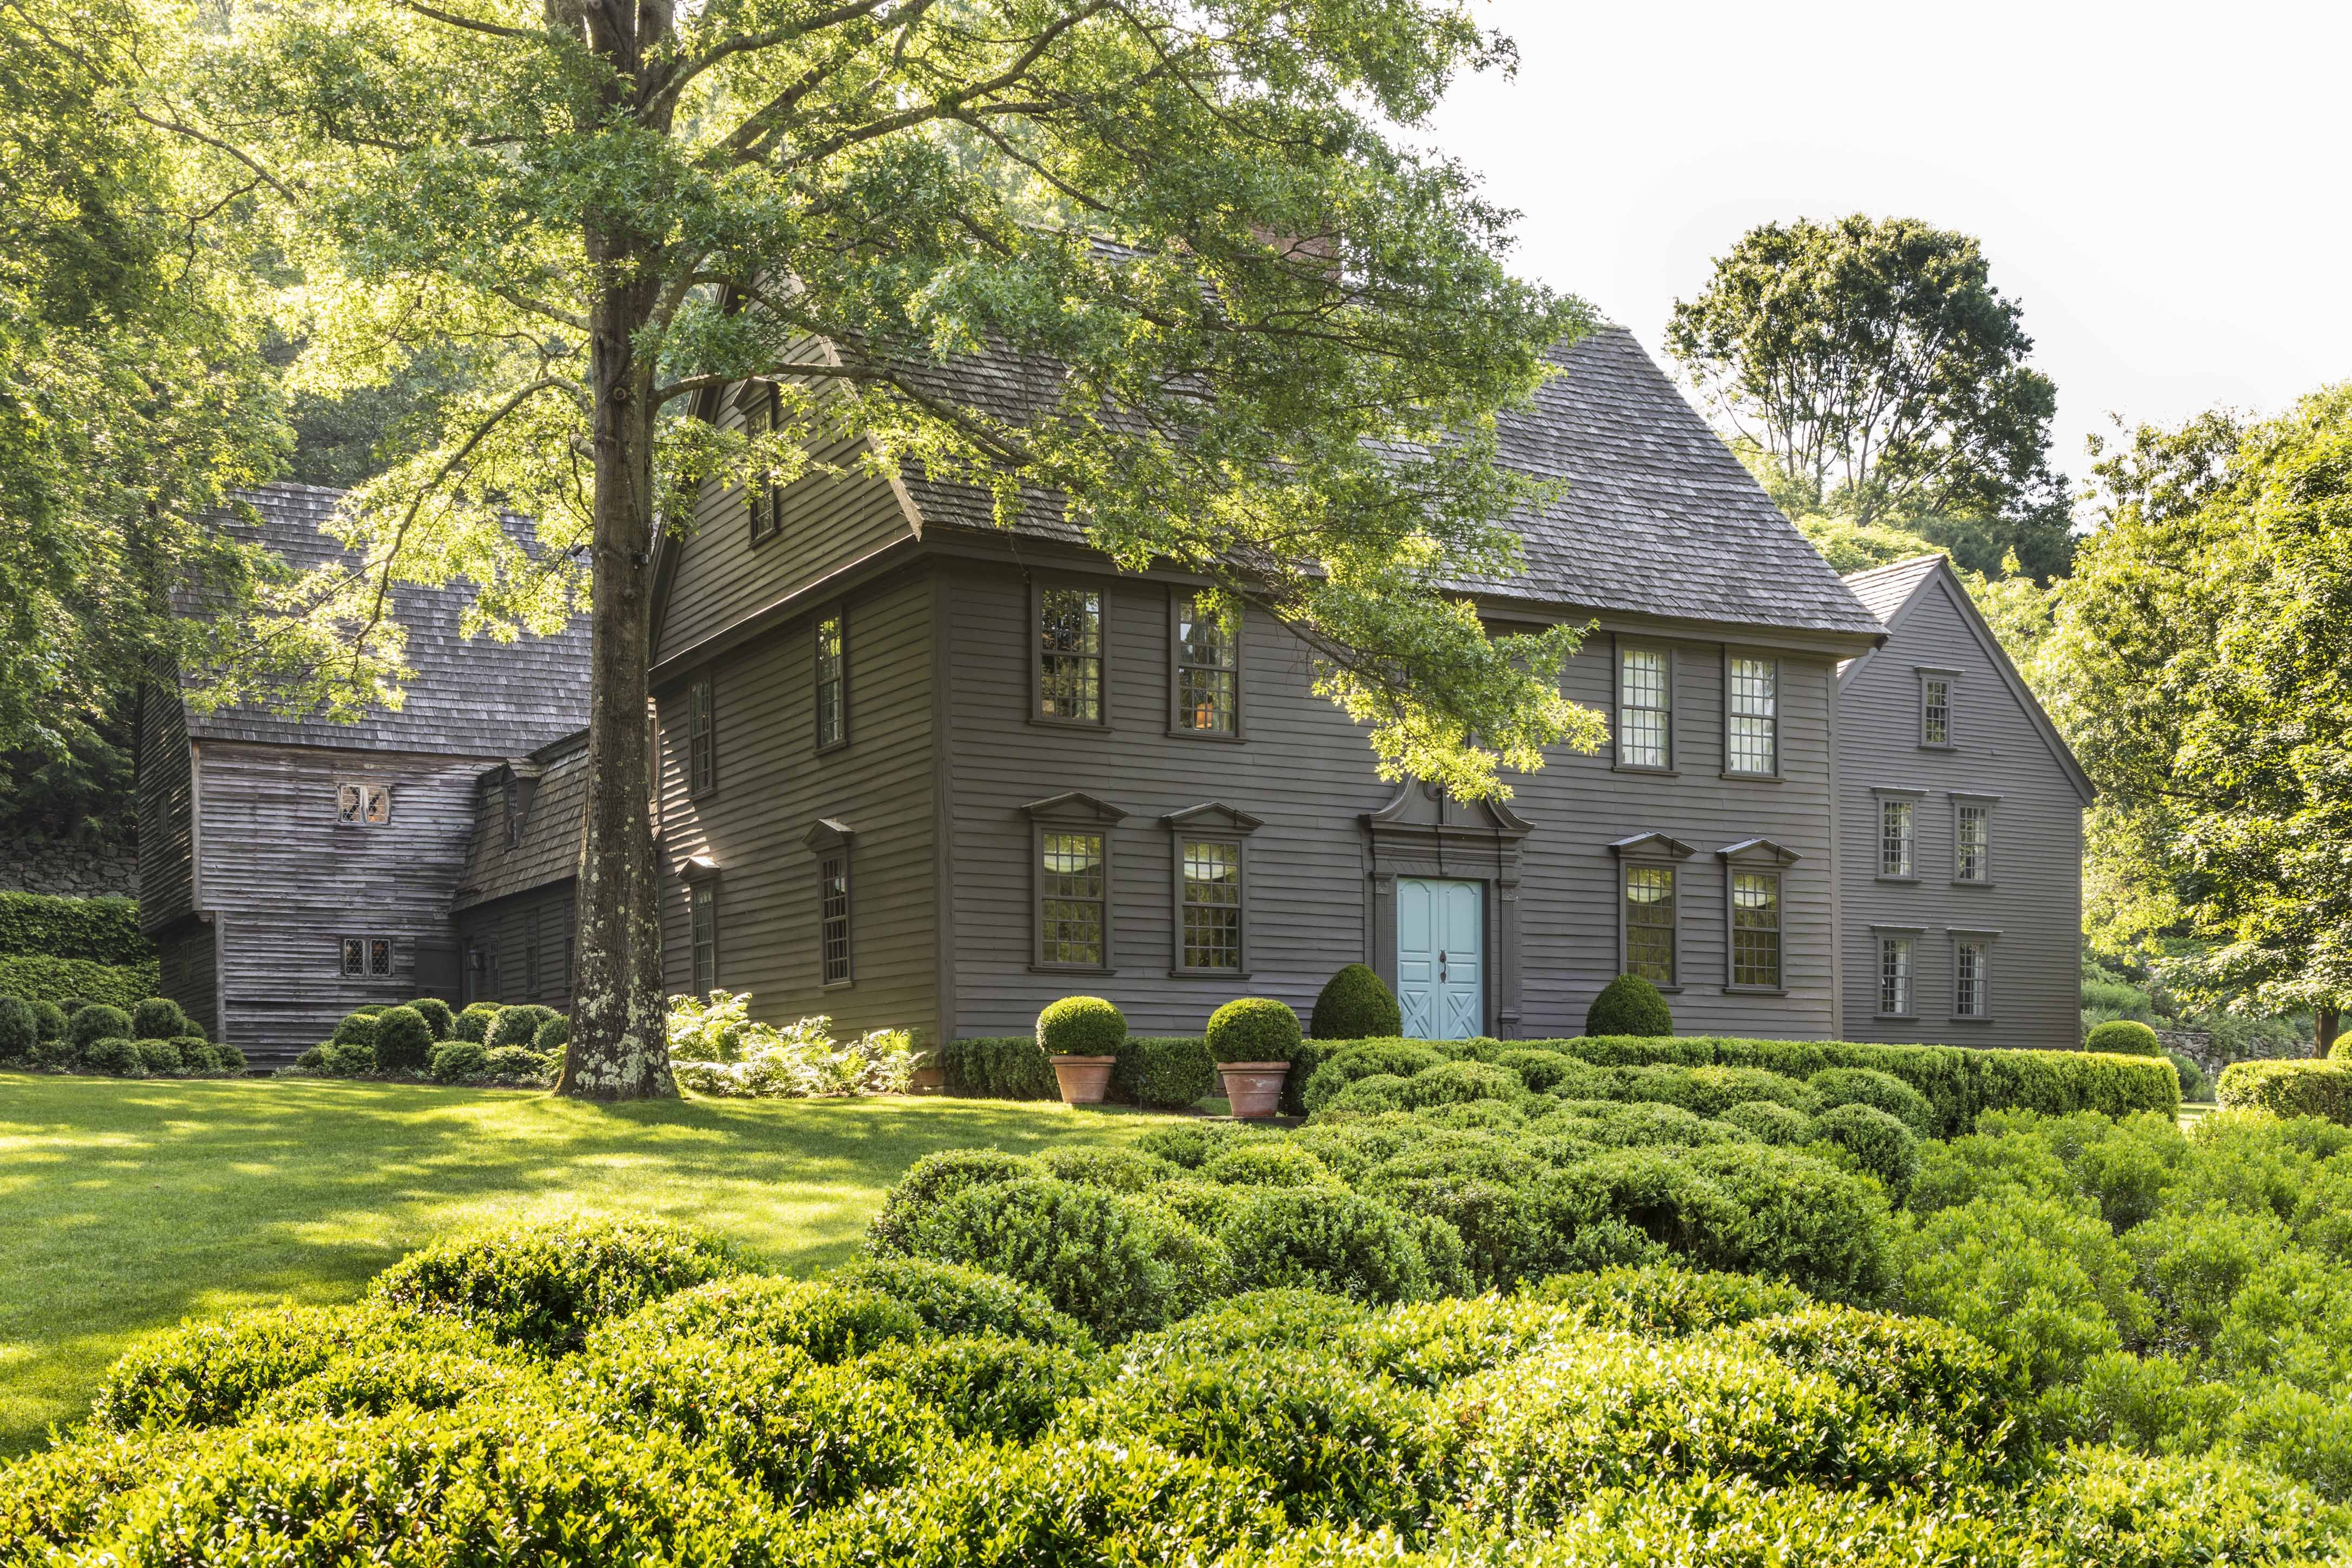 21 Boxwood Landscaping Ideas 2021 Boxwoods For Front Yard And Backyard